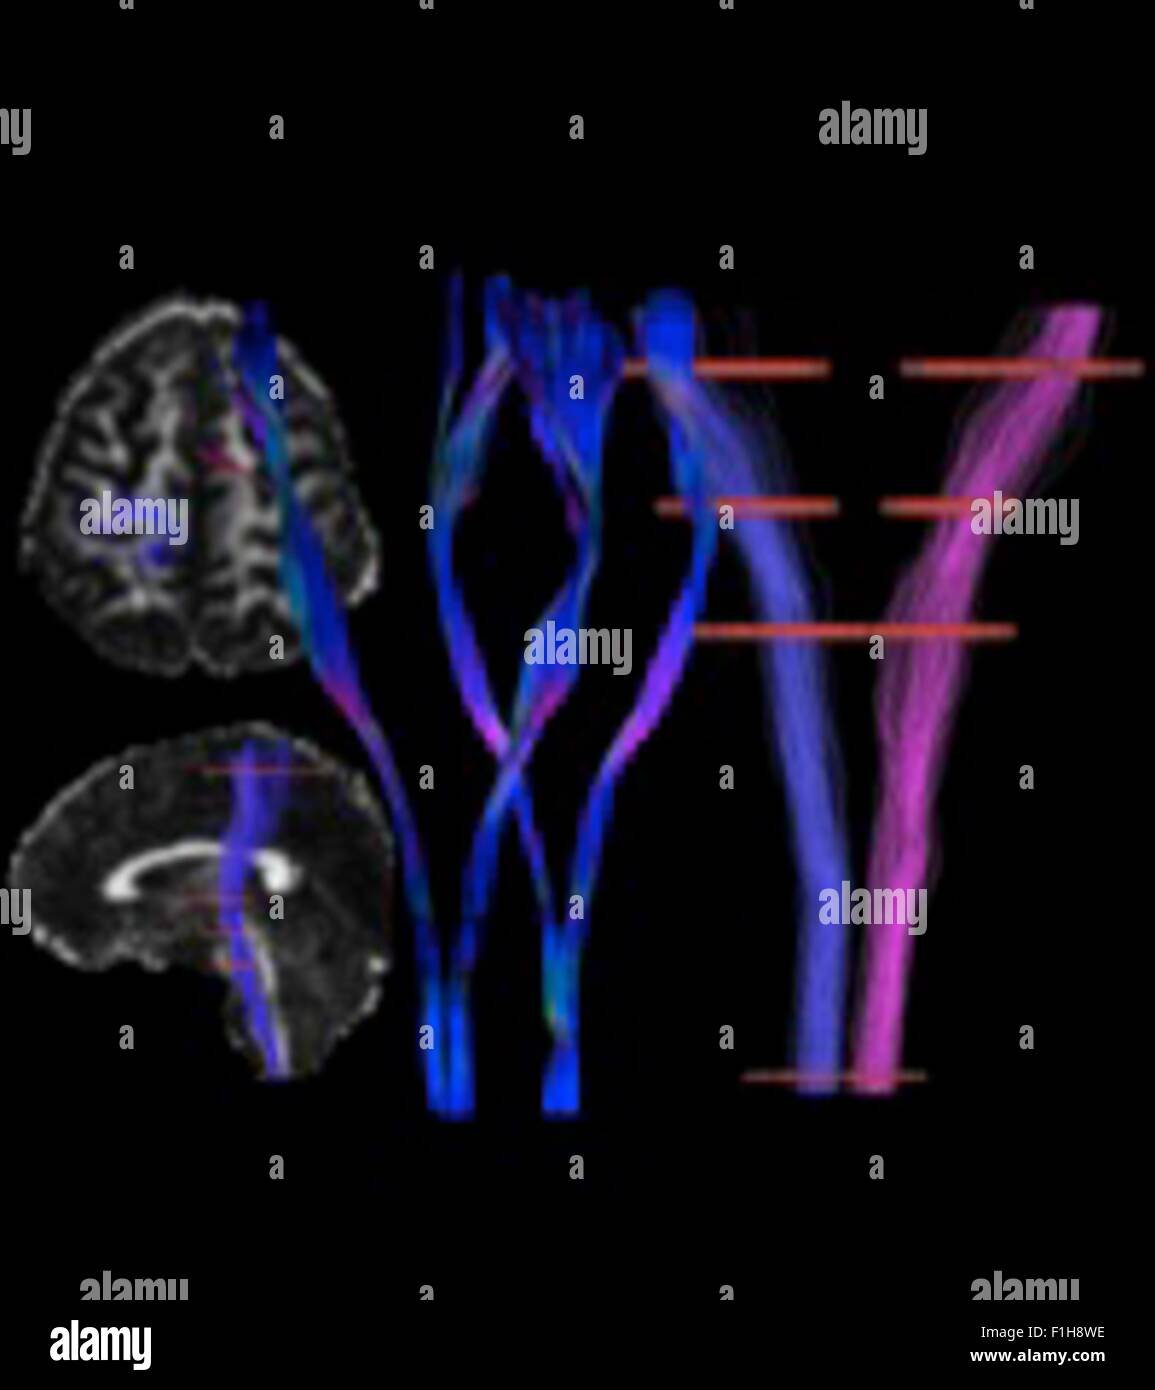 Spinal Tract Stockfotos & Spinal Tract Bilder - Alamy